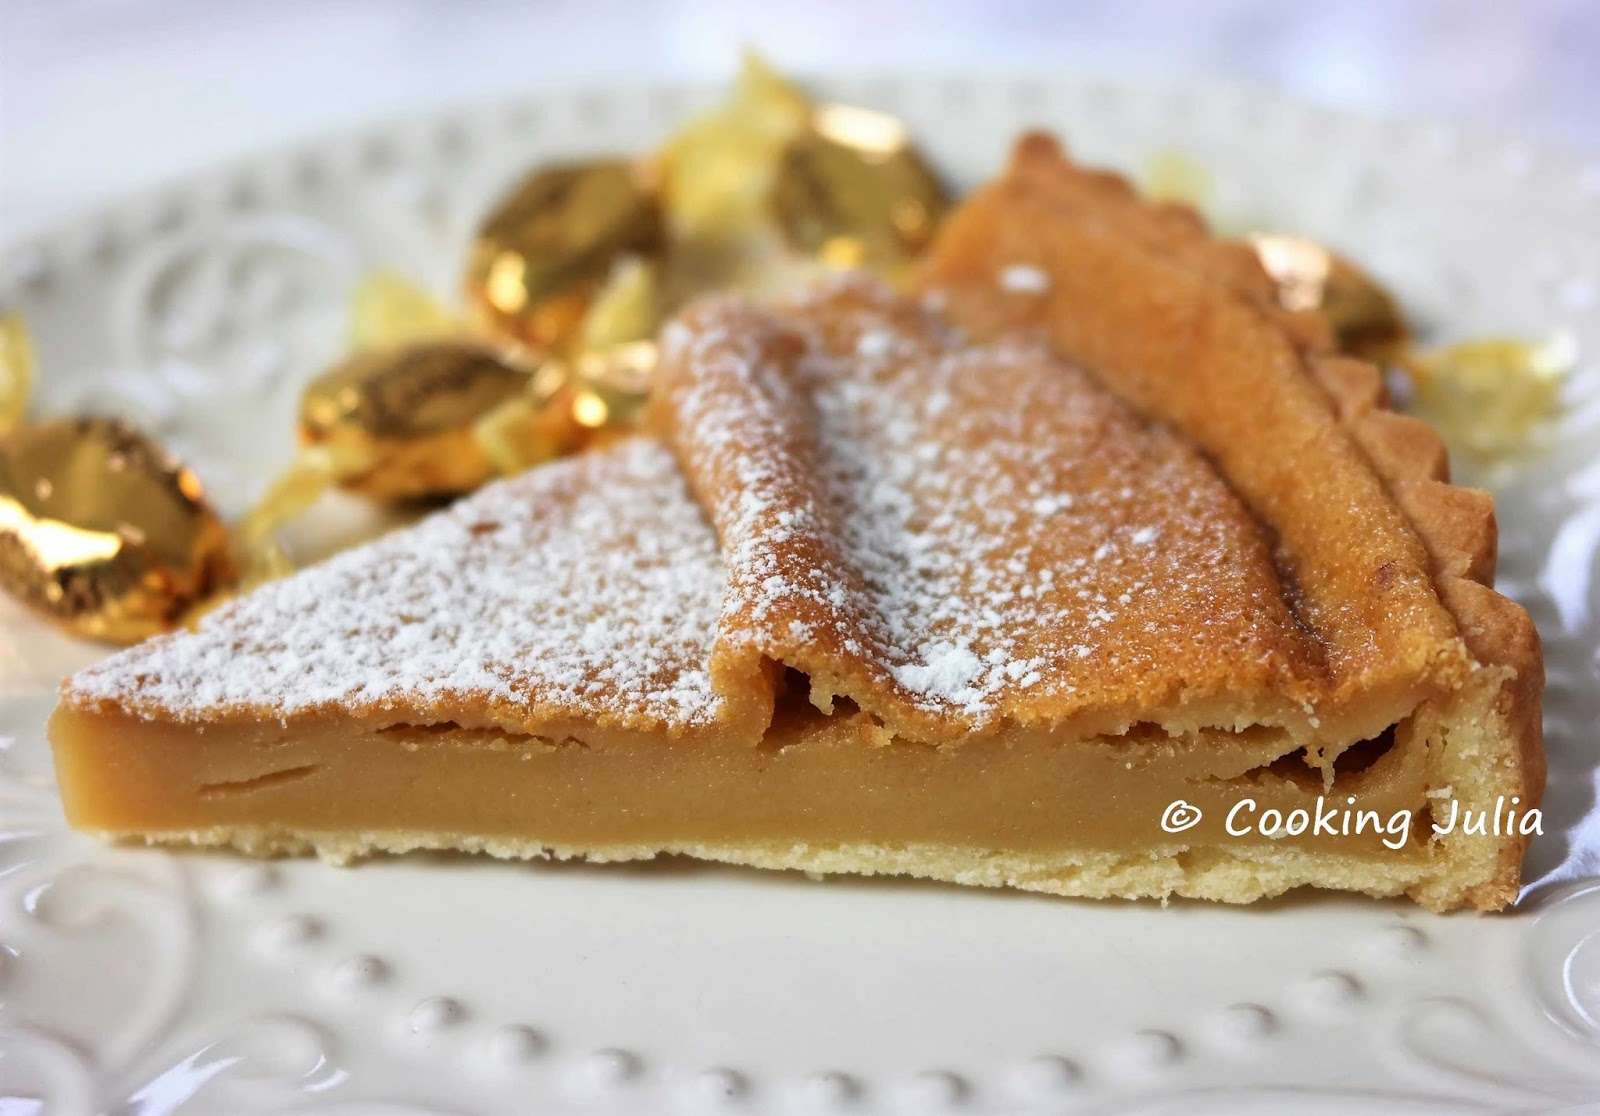 COOKING JULIA : TARTE AU CARAMEL DE LAURENT MARIOTTE